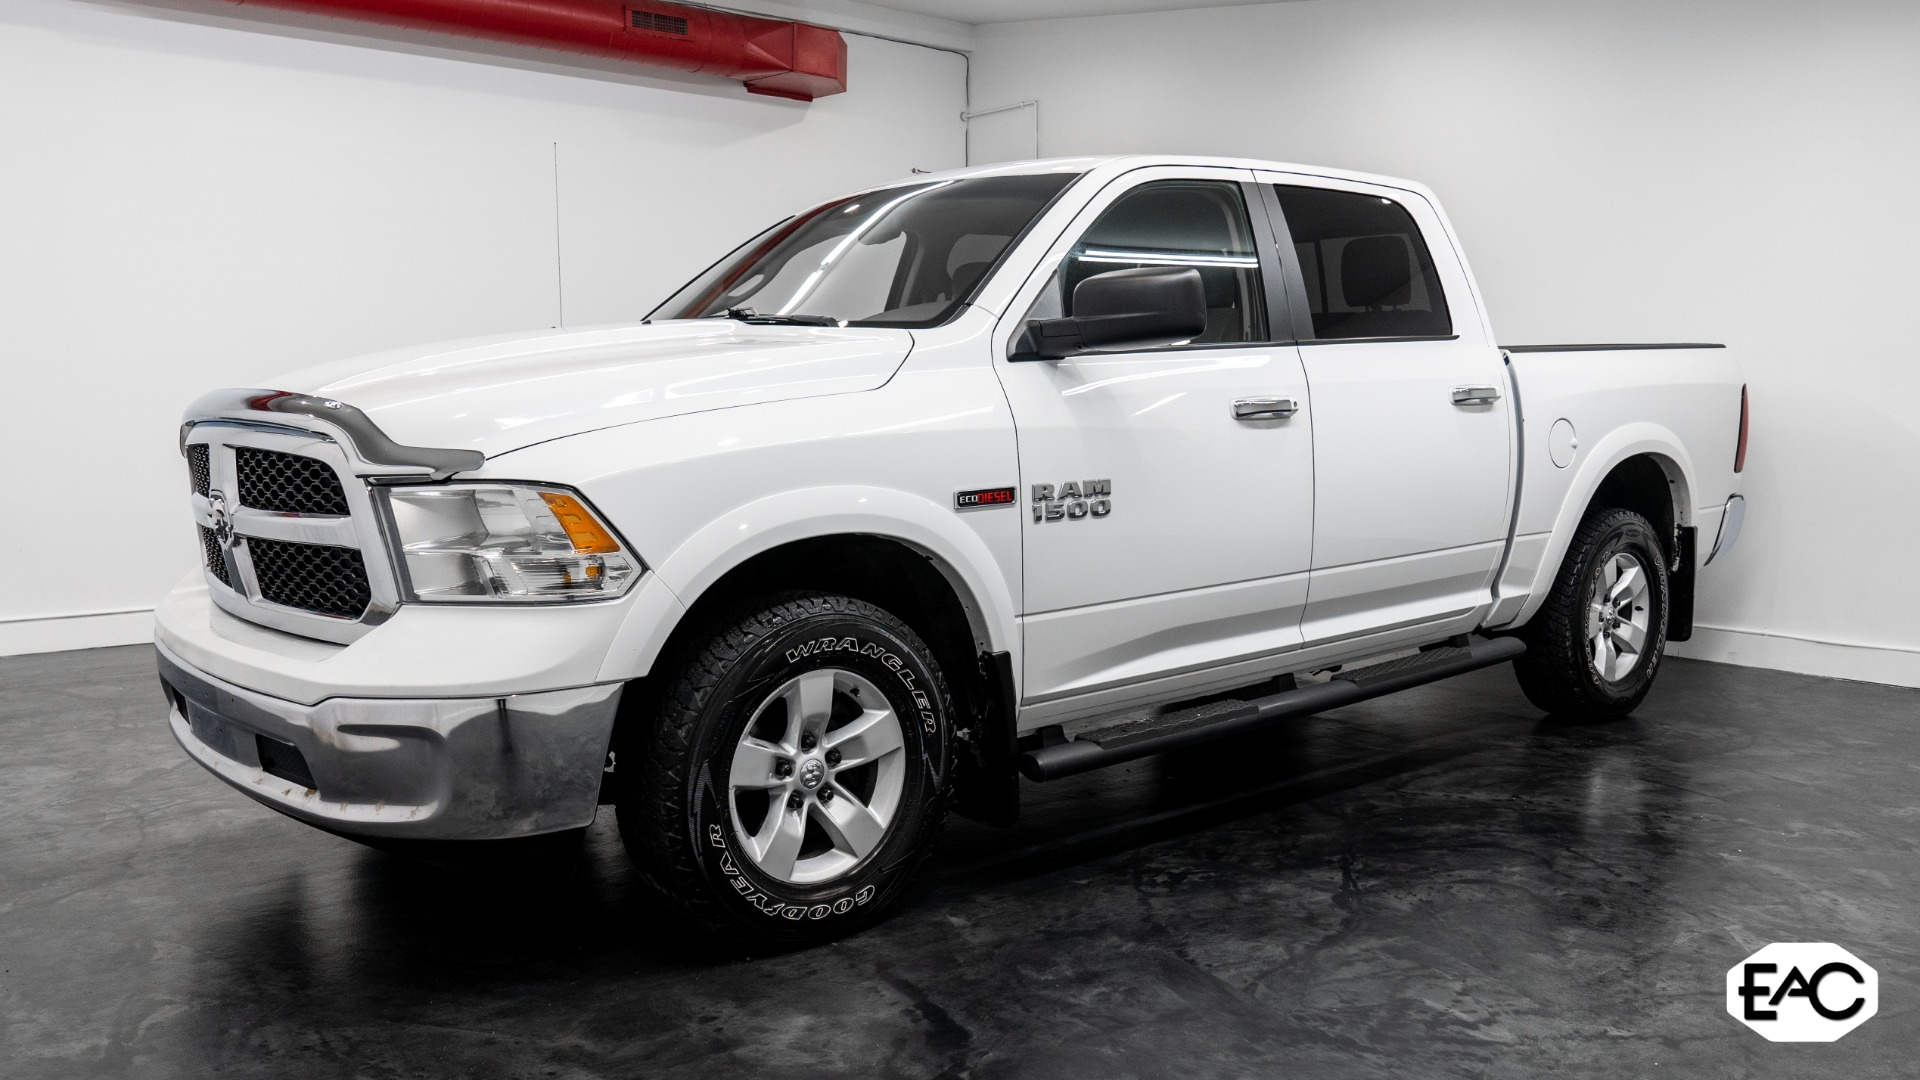 Used 2016 Ram Ram Pickup 1500 SLT for sale $24,990 at Empire Auto Collection in Warren MI 48091 1